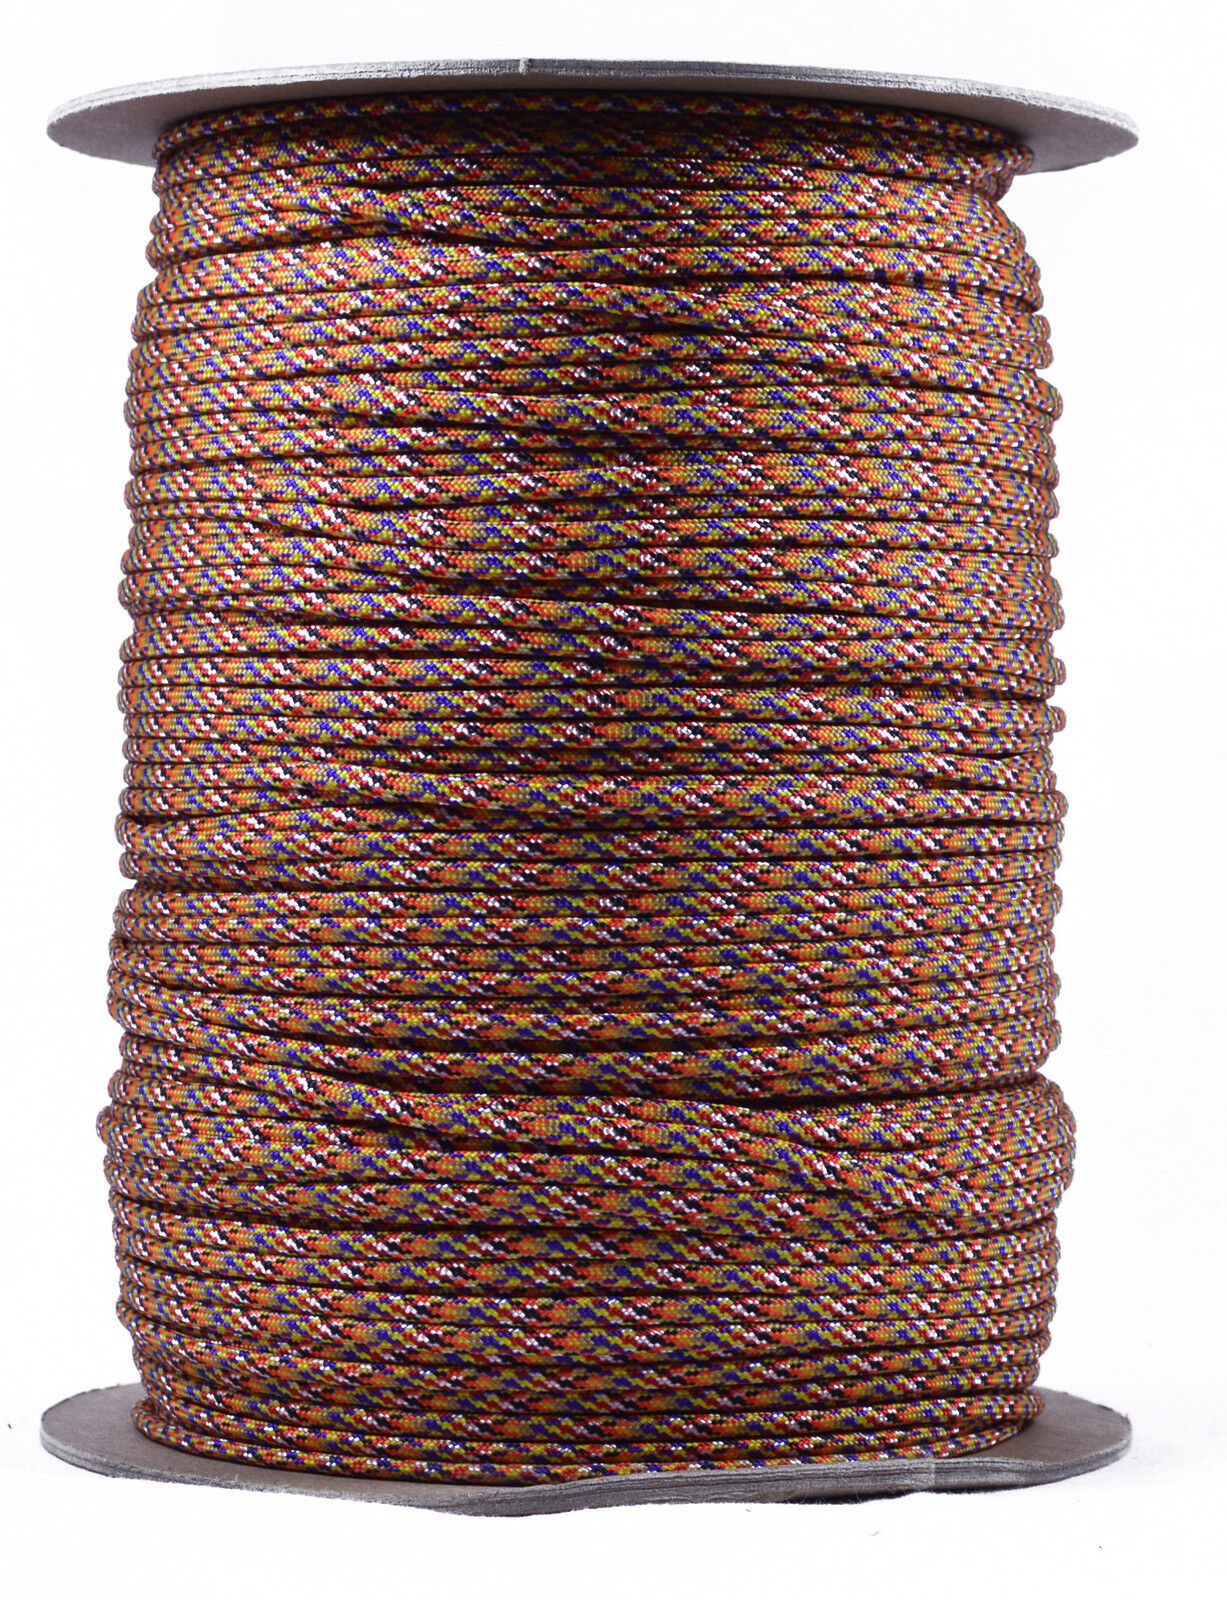 Overkill - 550 Paracord Rope 7 strand Parachute Cord - 1000 Foot Spool